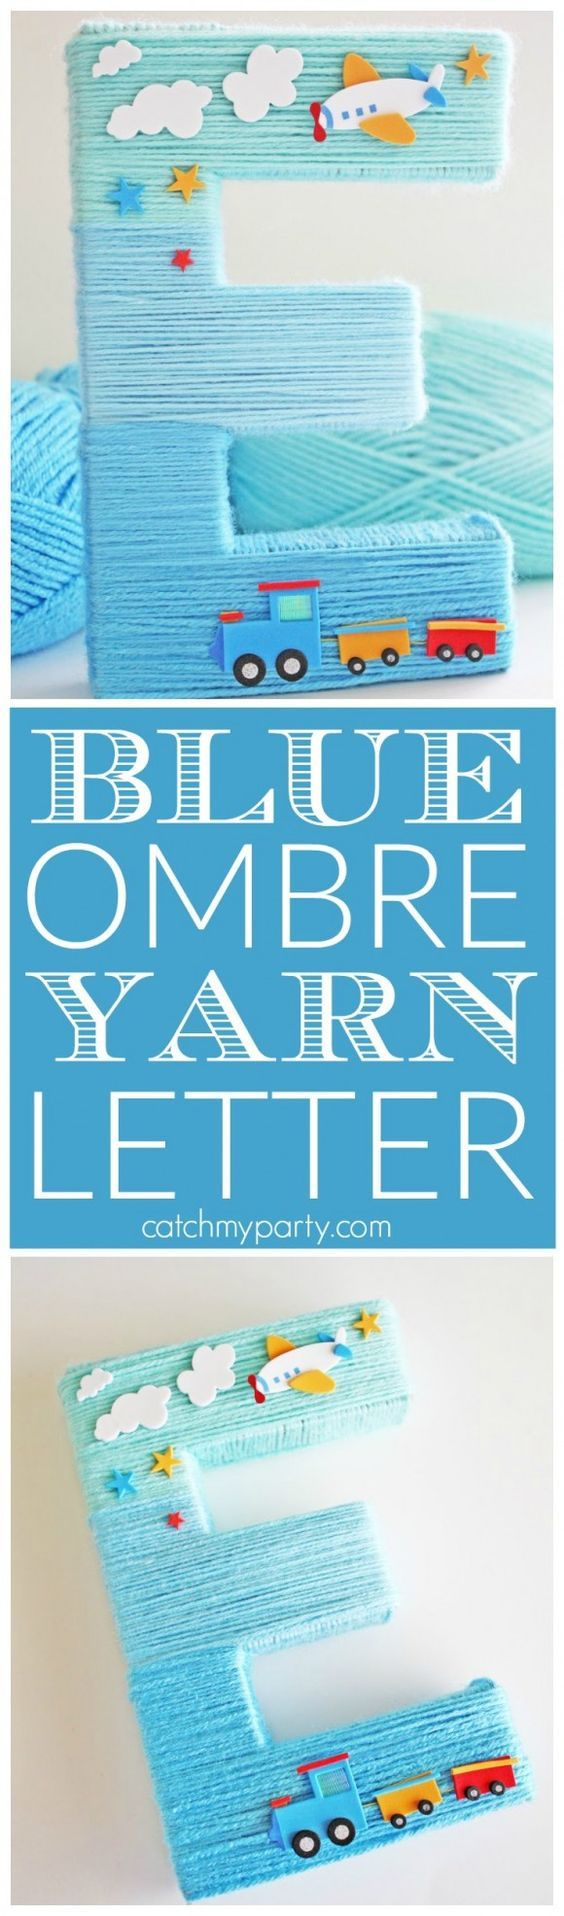 Blue Yarn Wrapped Ombre Monogram Letter.